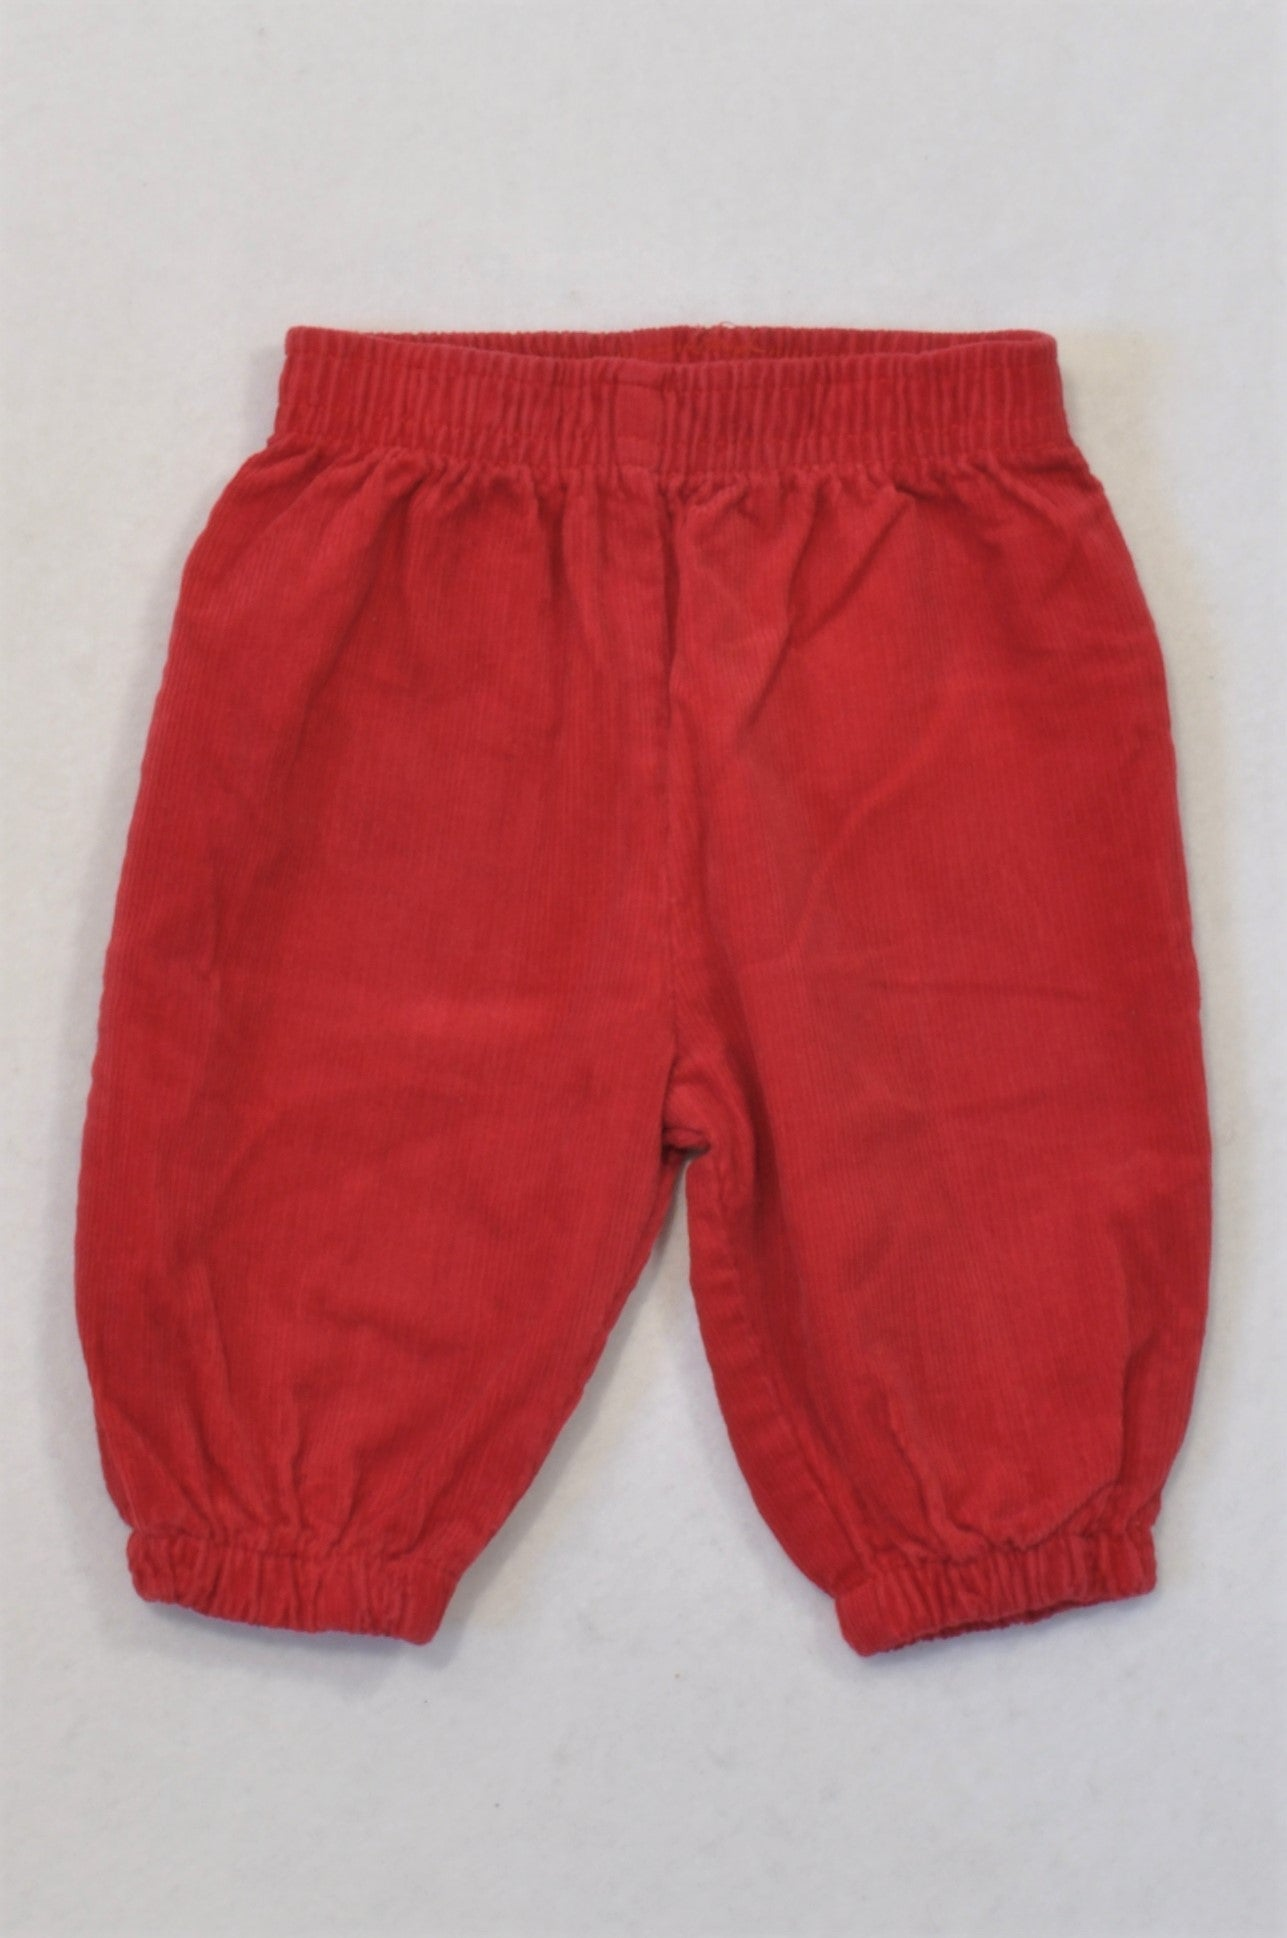 Ackermans Red Corduroy Cuffed Pants Unisex 0-3 months